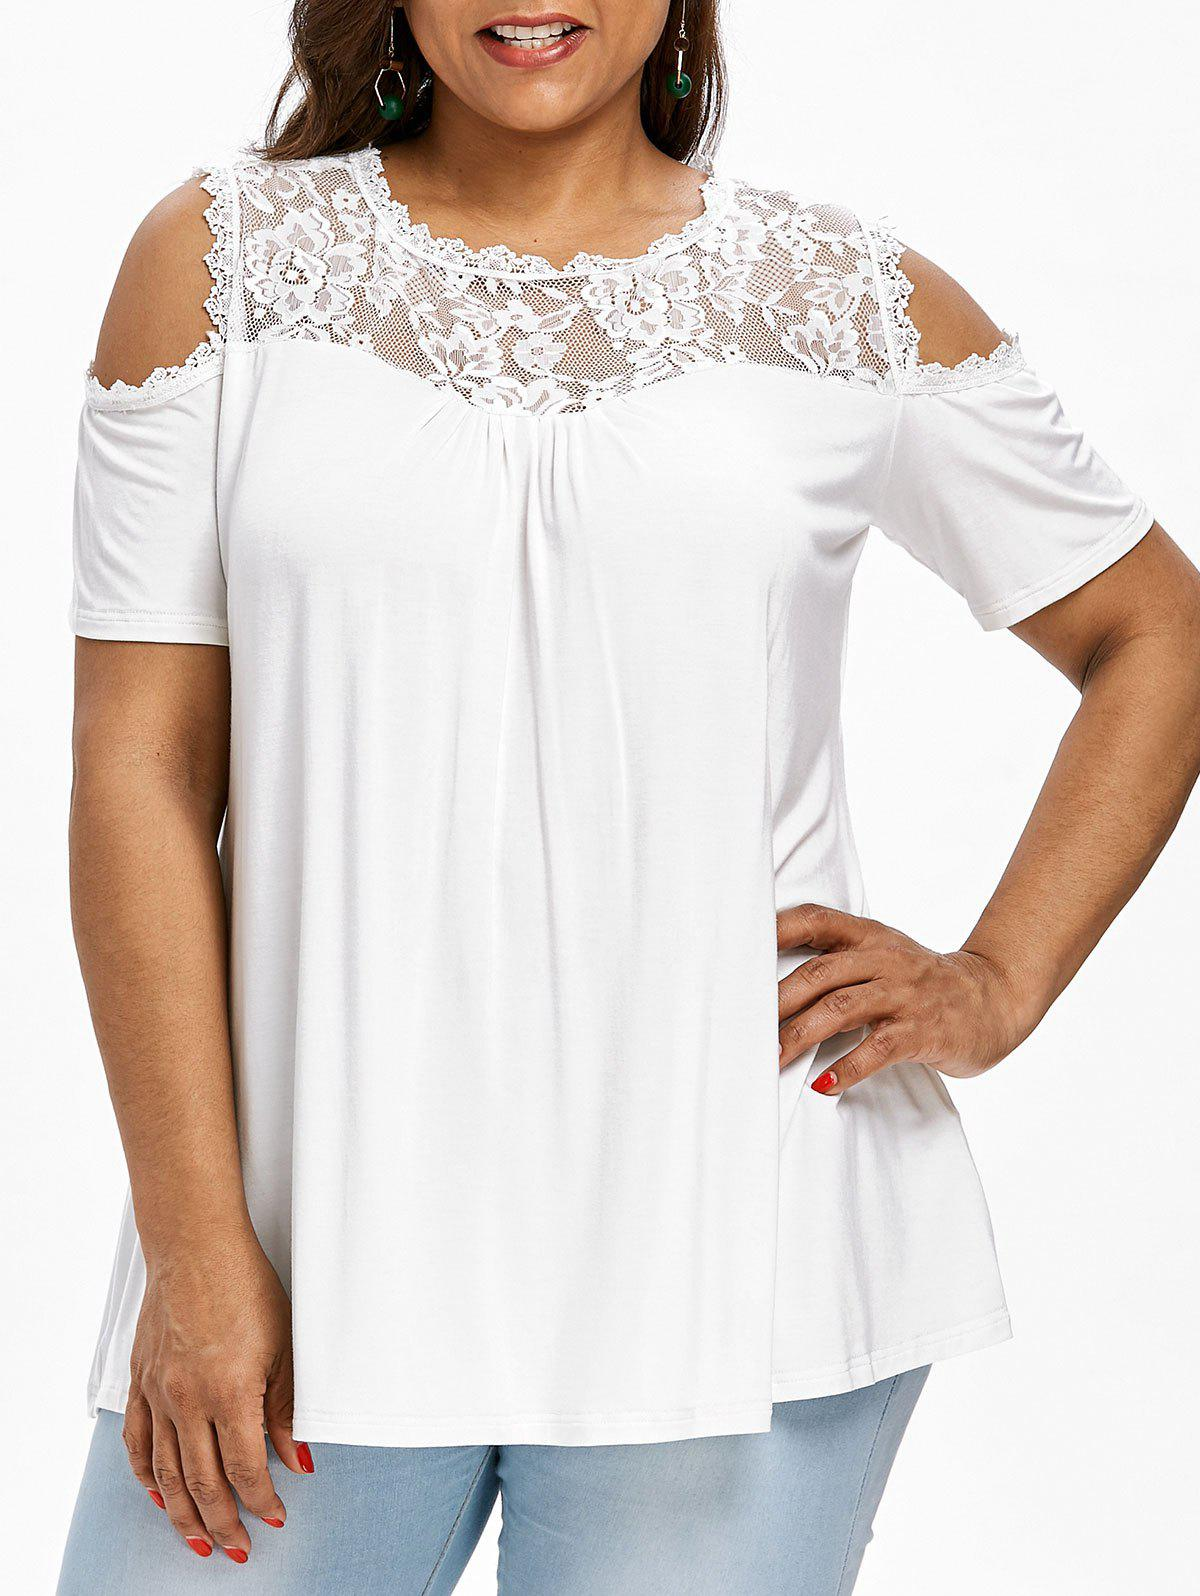 0150b912a35 64% OFF   2018 Lace Panel Plus Size Short Sleeve T-shirt In White ...